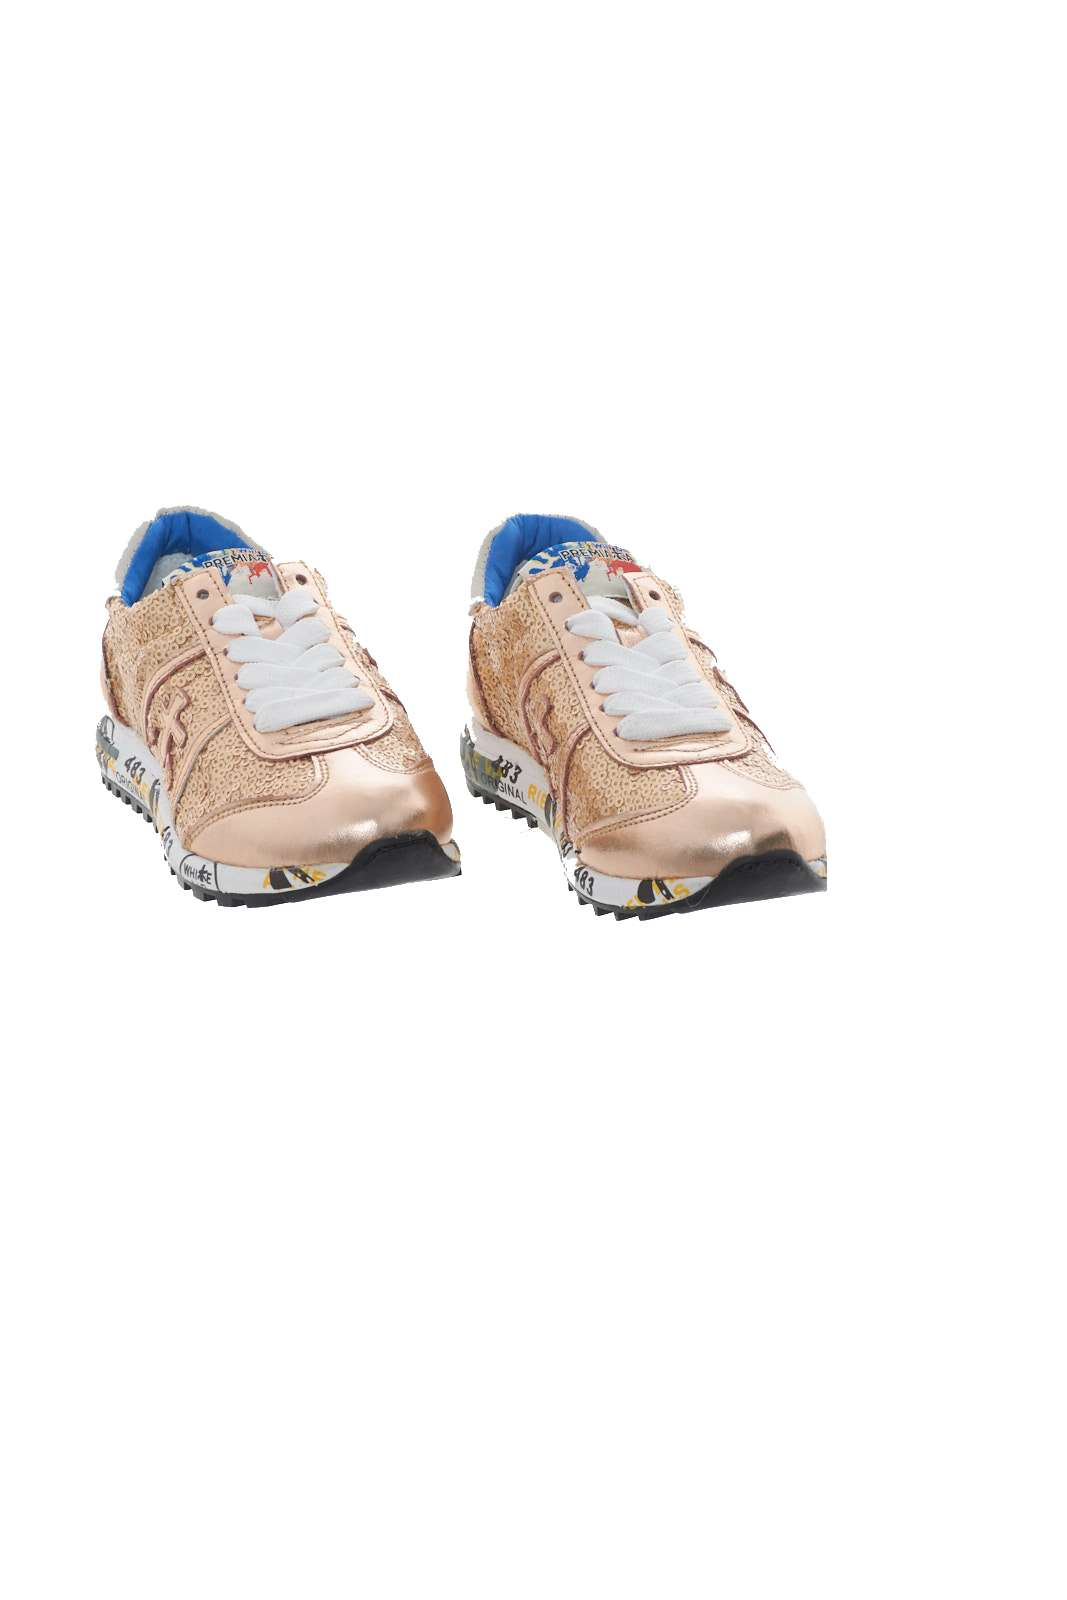 /media/catalog/product/A/I/AI-outlet_parmax-sneaker-bambina-Will-be-Premiata-lucy-B_1.jpg